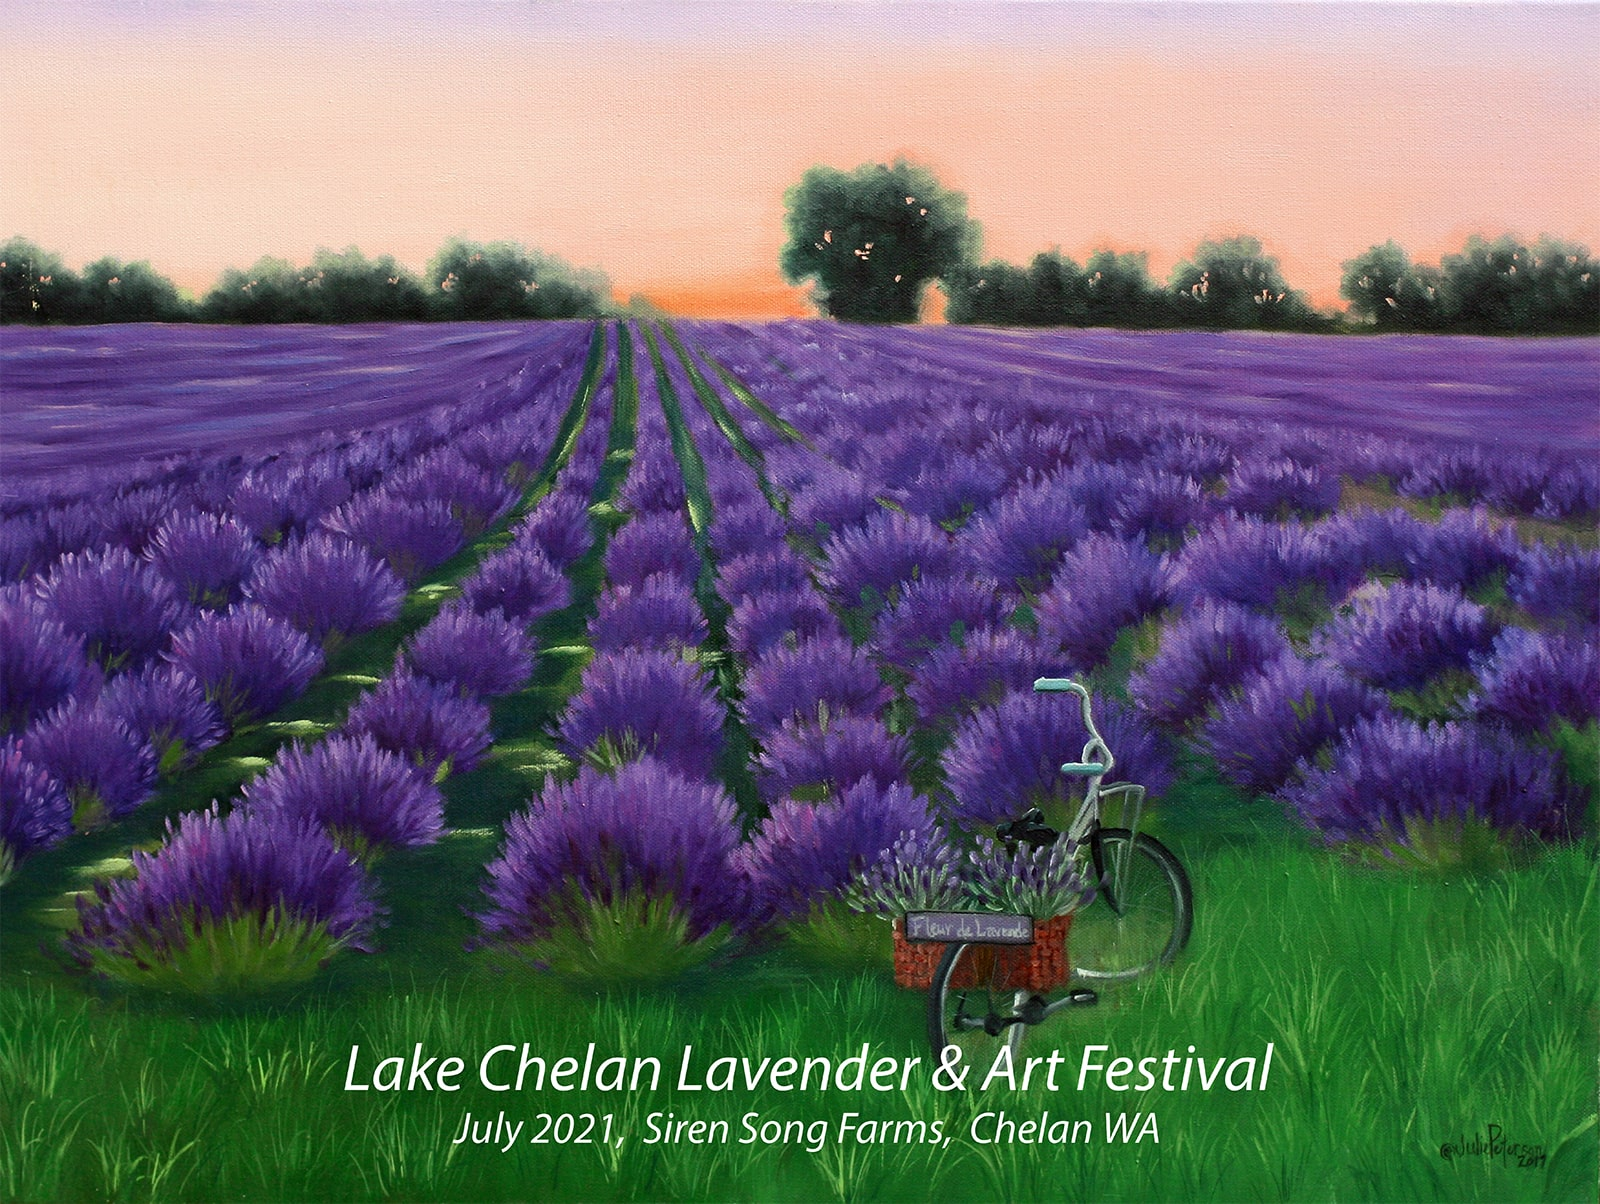 Painting of lavender fields with a bicycle